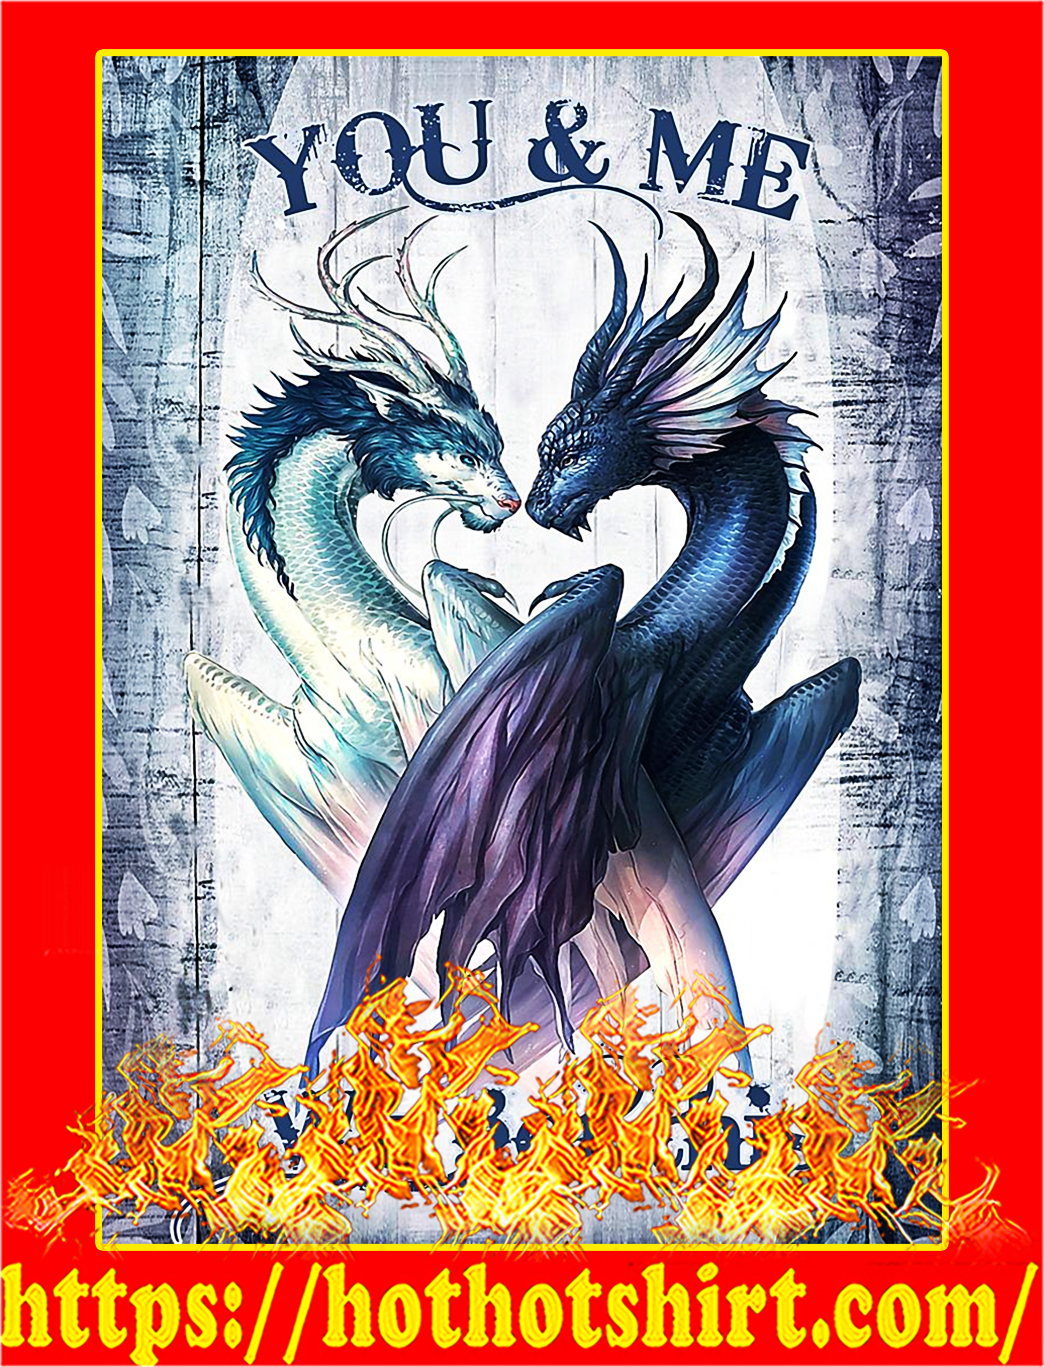 You and me we got this dragon poster - A3